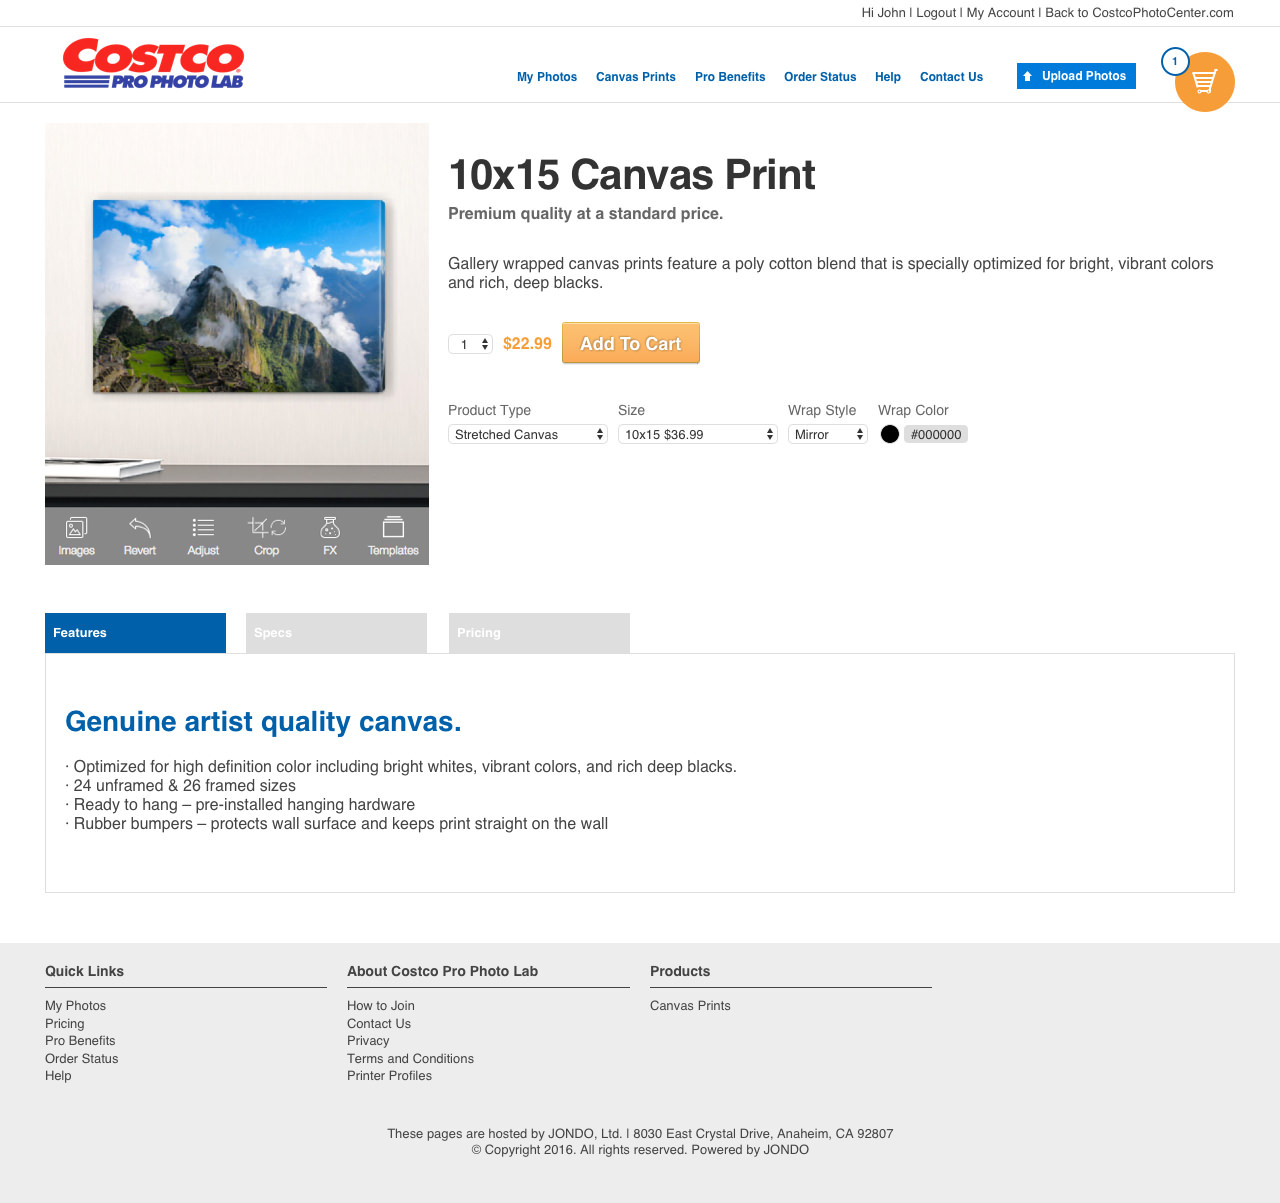 Costco Pro Photo Lab